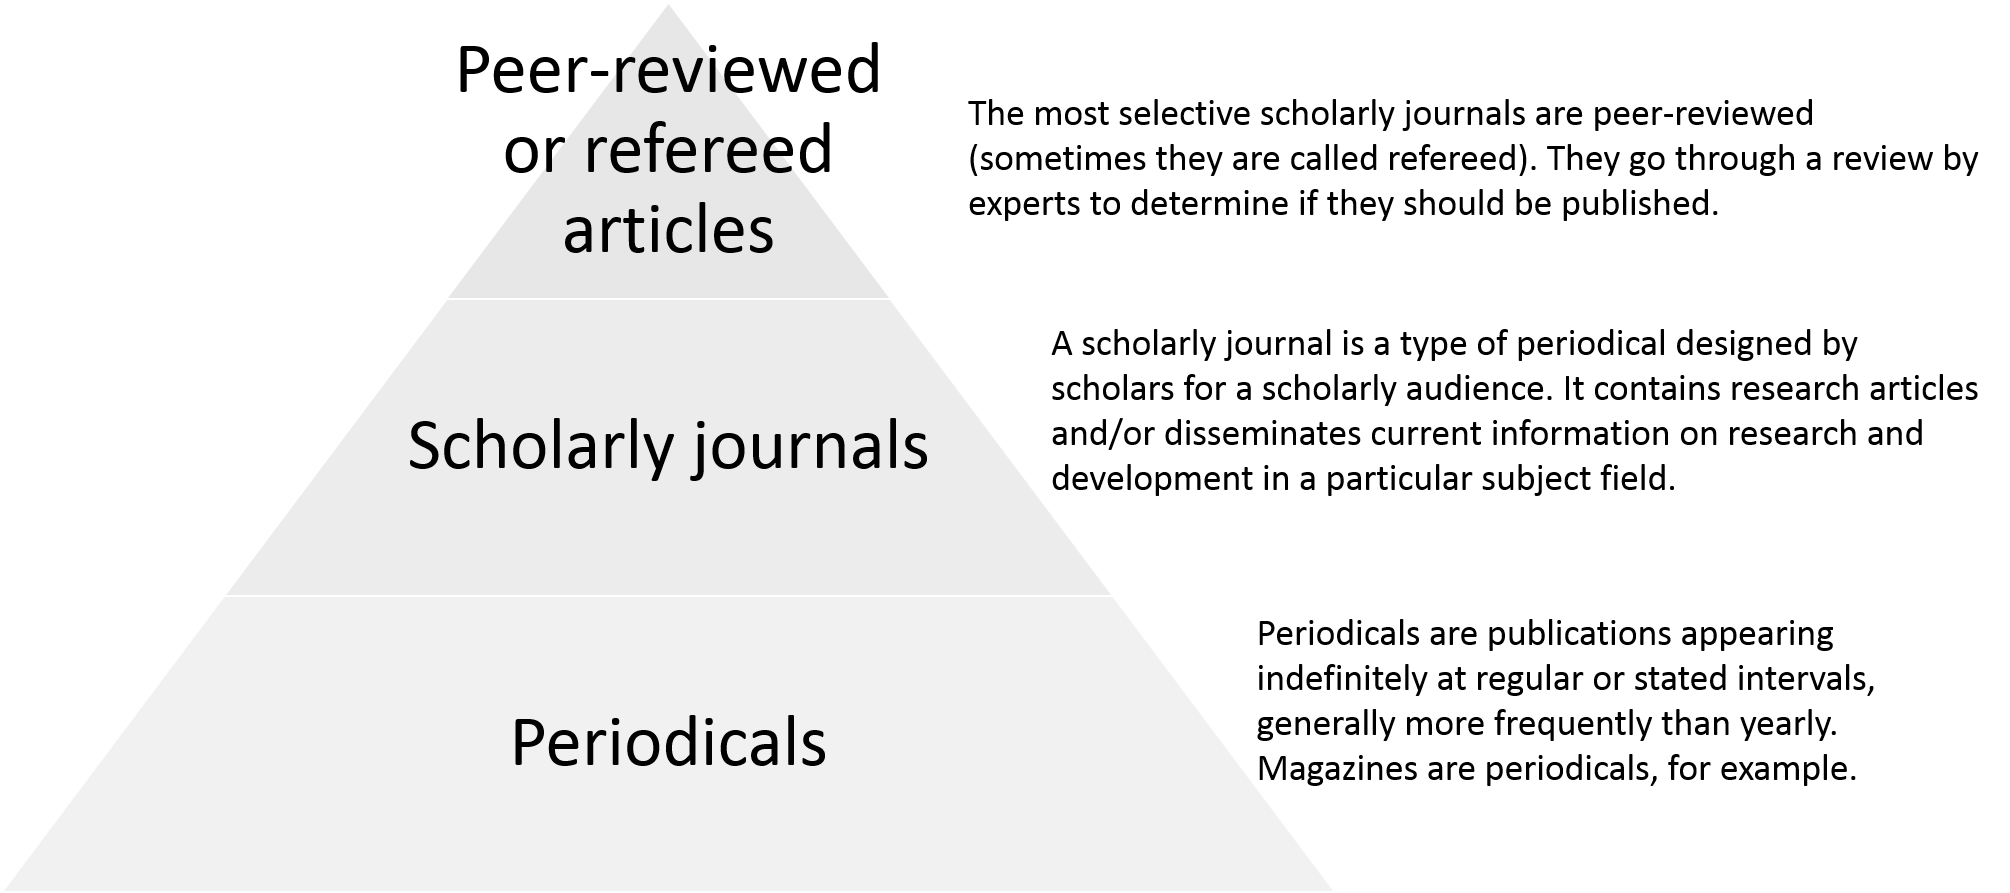 Triangle graphic representing the relationship between peer-reviewed or refereed articles, scholarly journals, and periodicals.